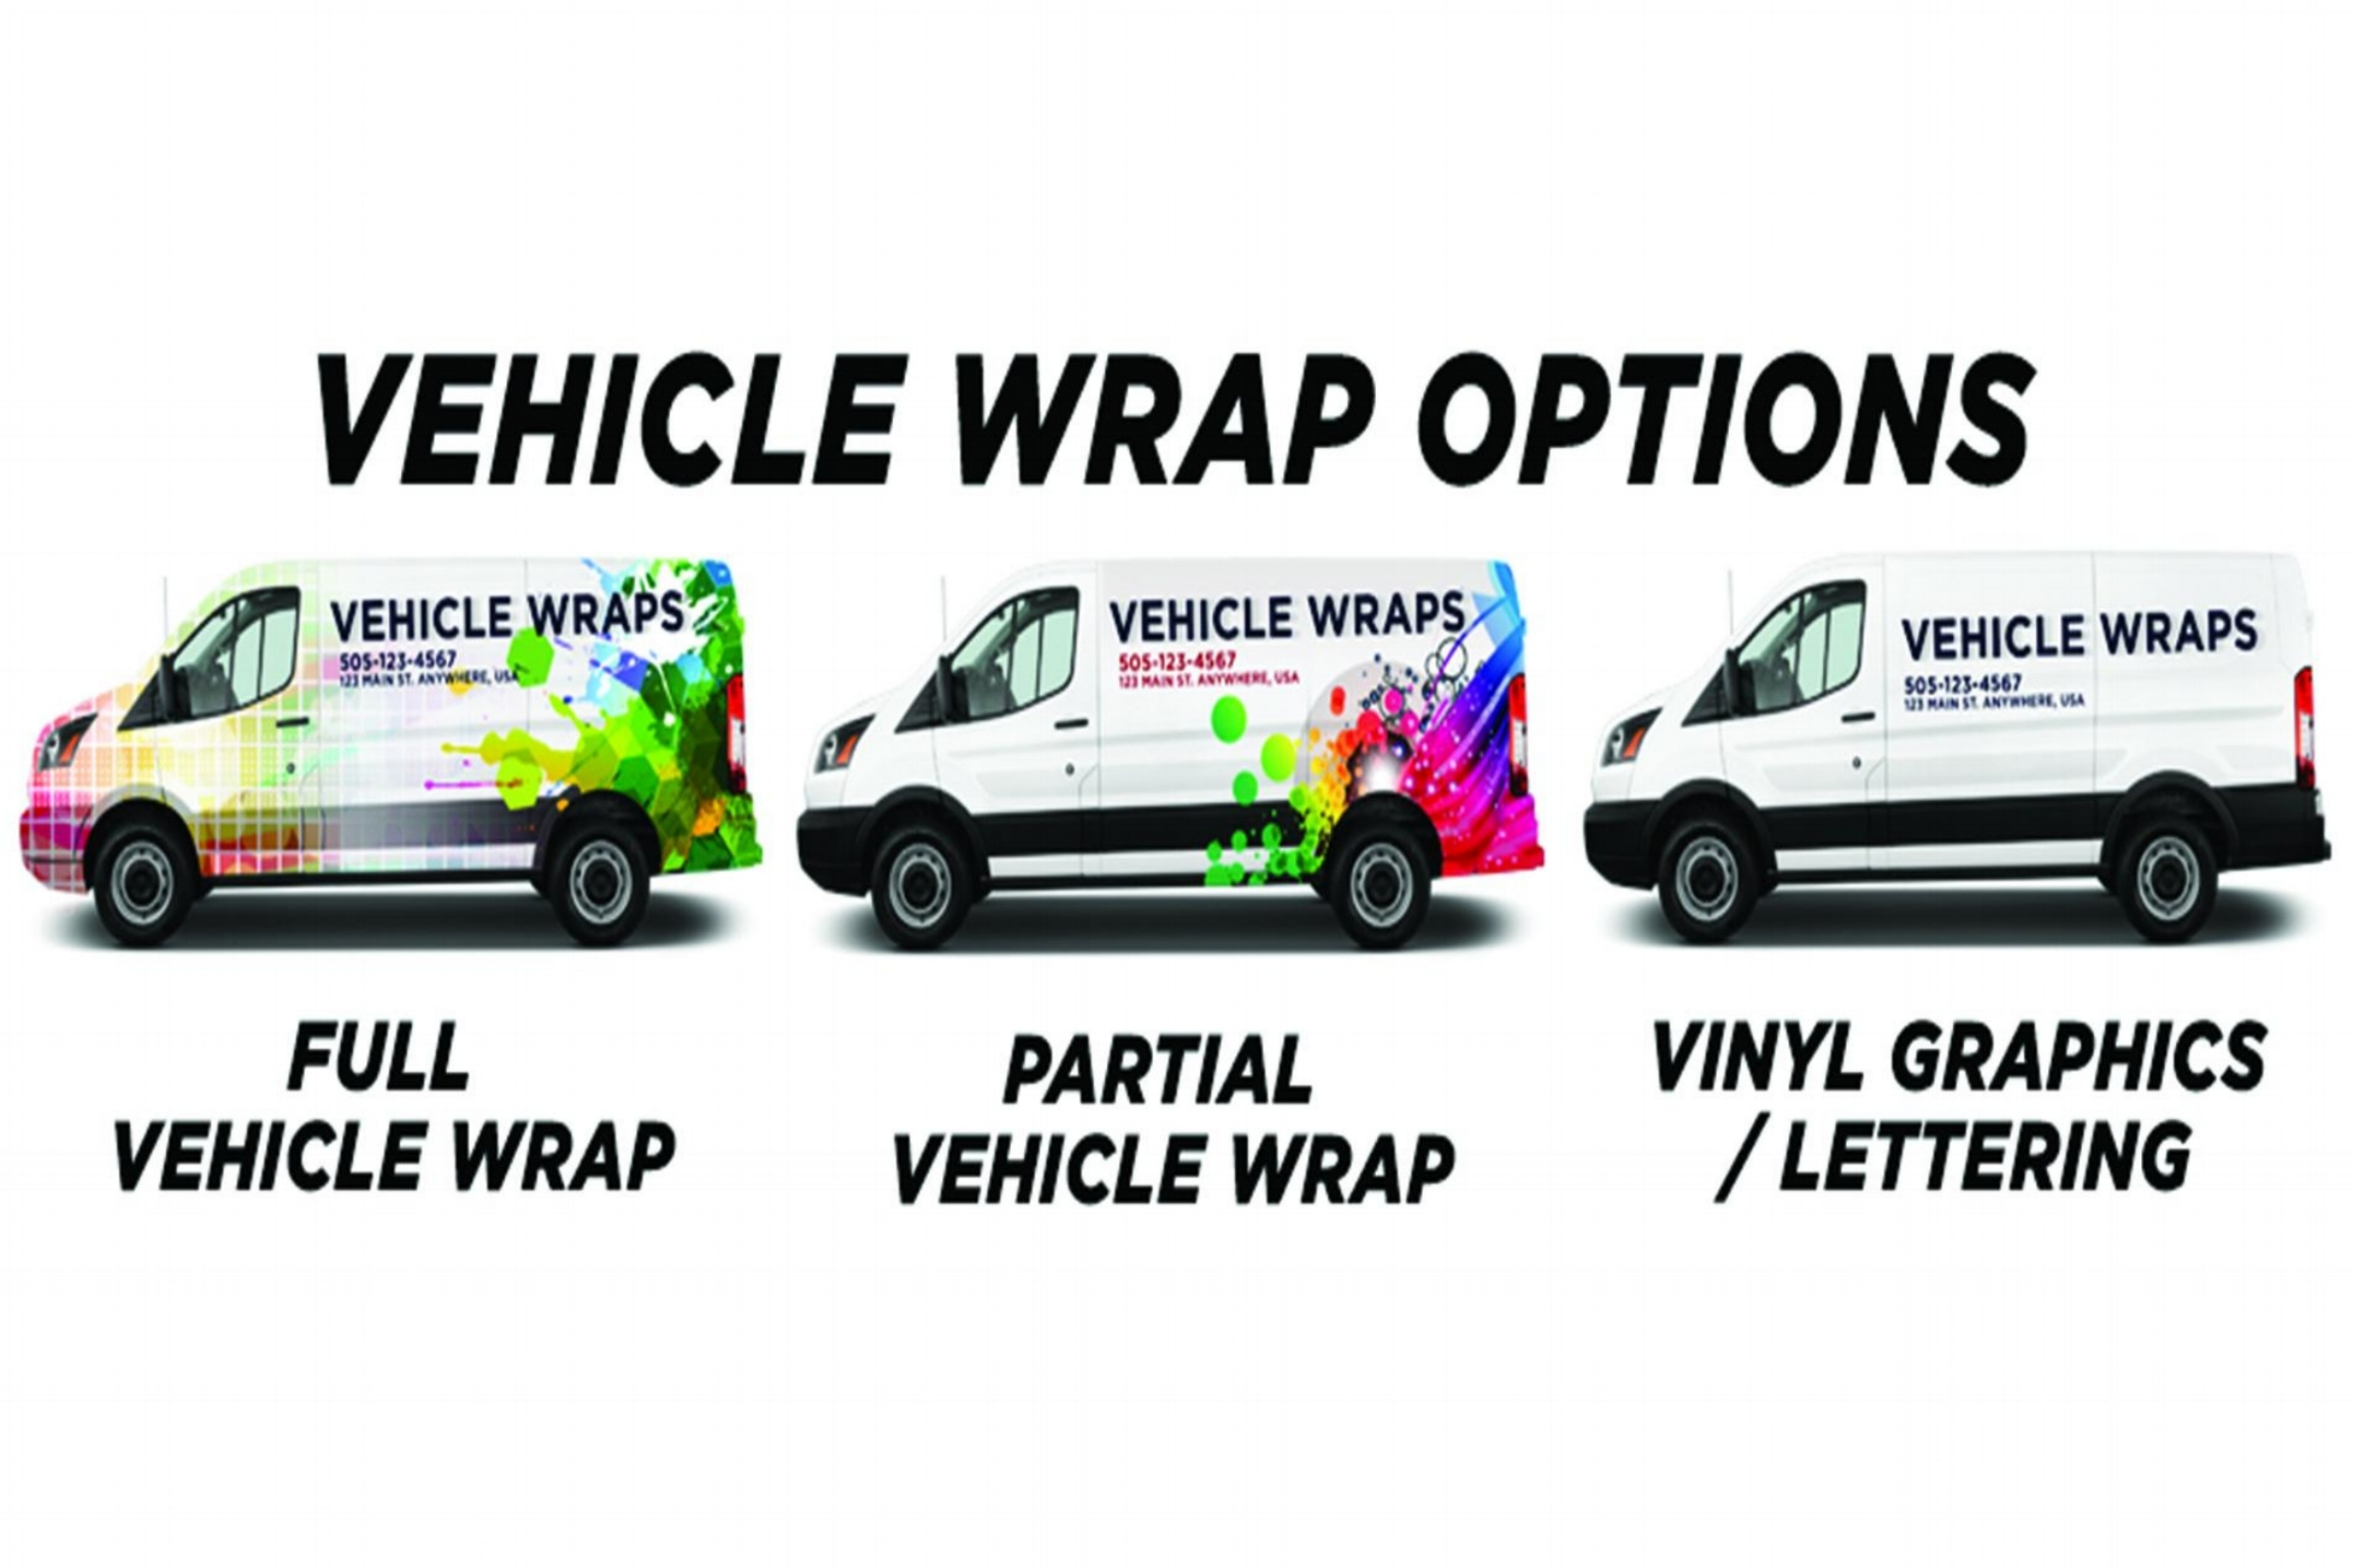 - We have an option for every budget. You can choose from a full wrap, partial wrap, or lettering for your company vehicle to promote your brand and make an impact in the mind of consumers.